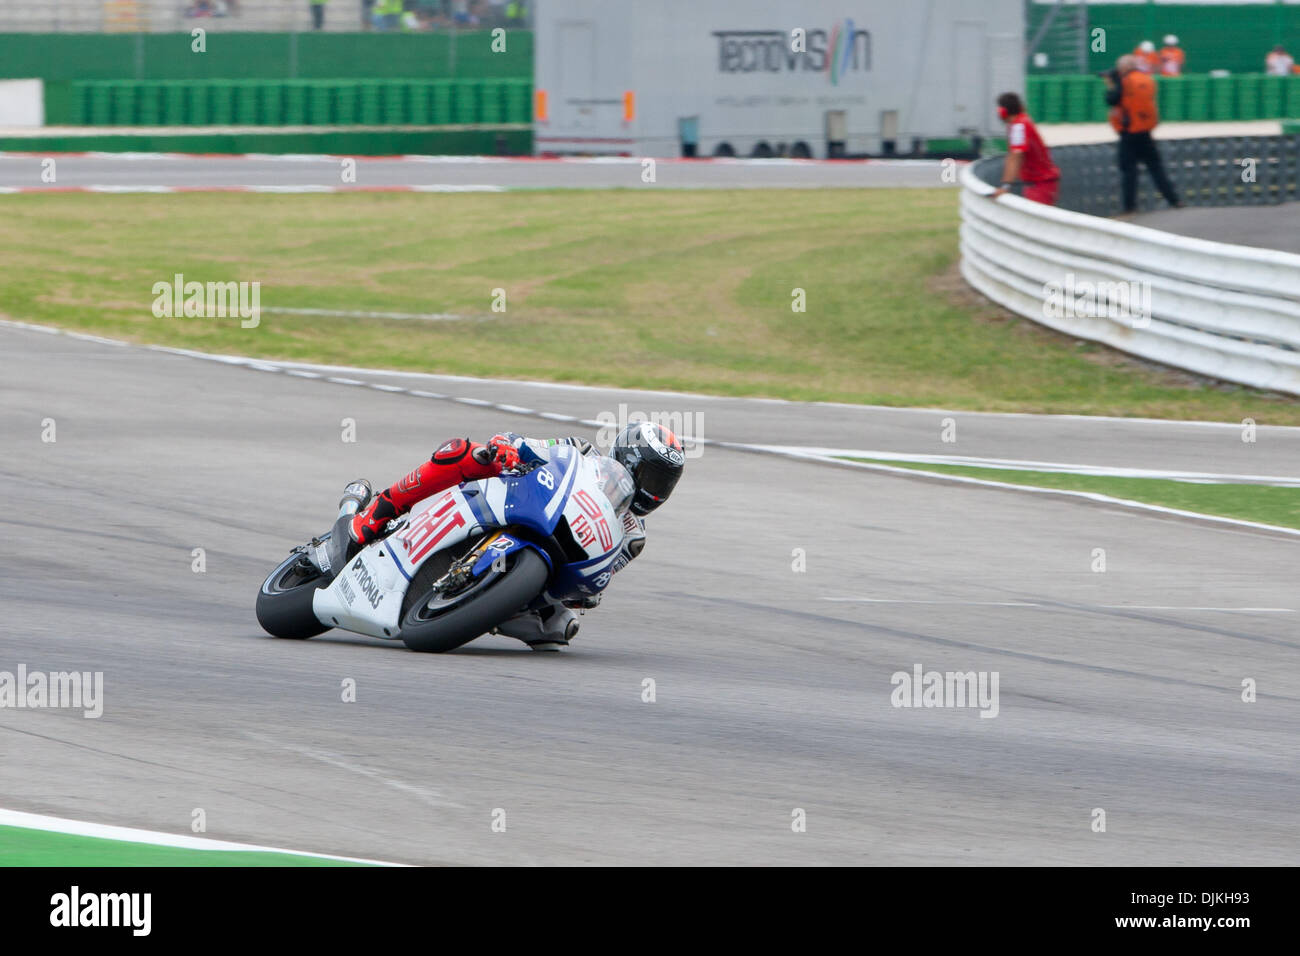 Sep. 07, 2010 - Misano Adriatico, Italy - FIAT Yamaha rider Jorge Lorenzo (SPA #99) controlling his second place in the San Marino GP in Misano Adriatico, Italy. Lorenzo is the steady leader of the 2010 championship (Credit Image: © Andrea Ranalli/Southcreek Global/ZUMApress.com) - Stock Image